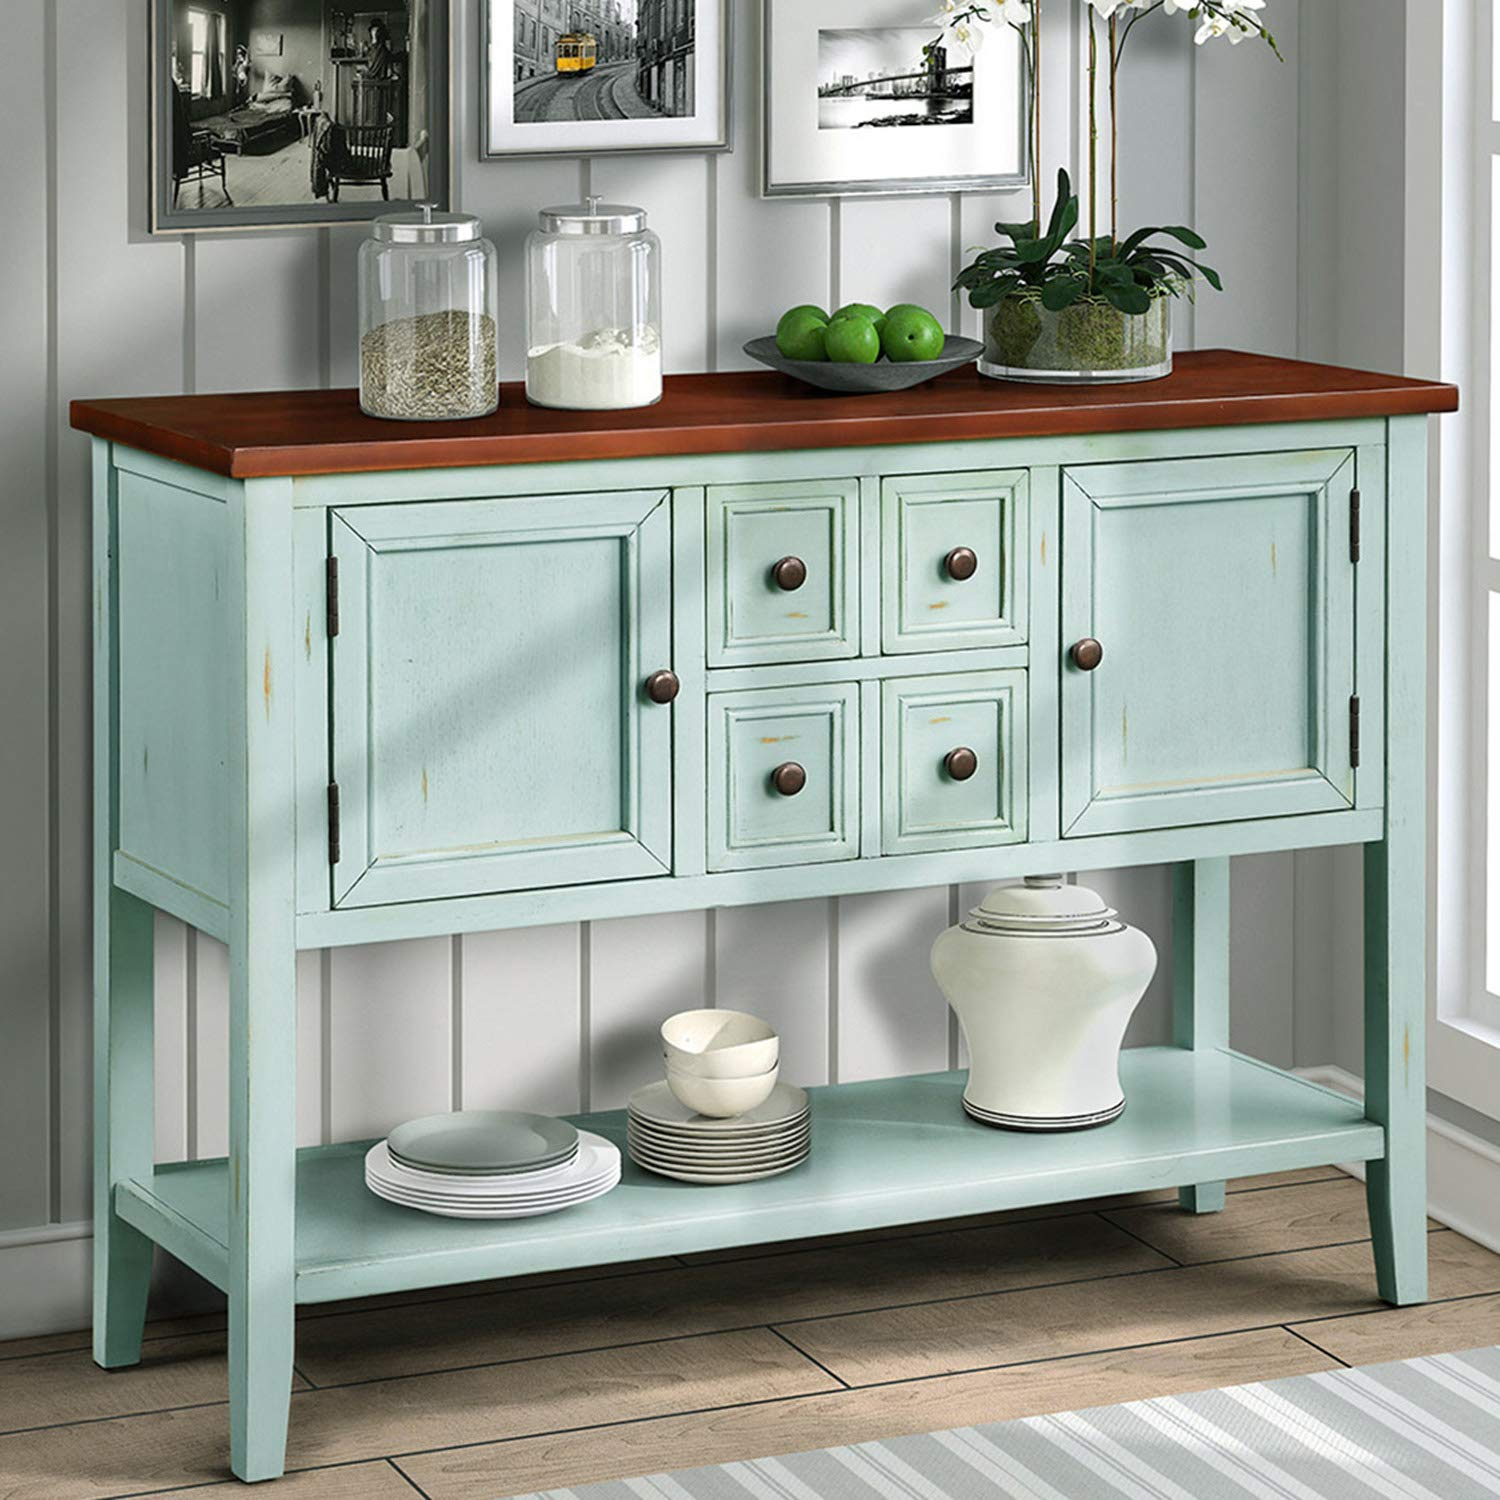 P PURLOVE Console Table Buffet Sideboard with Storage Drawers Cabinets and Bottom Shelf Retro Blue